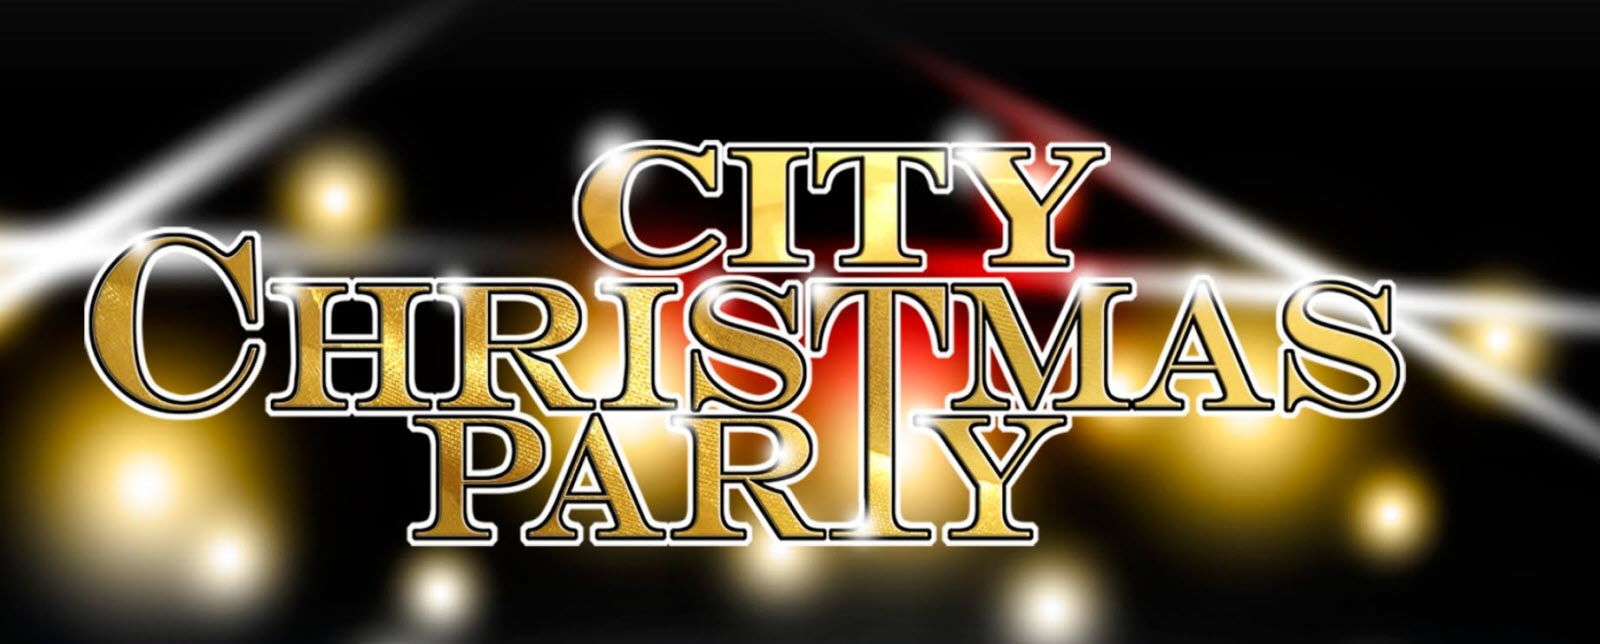 Logo City Christmas Party